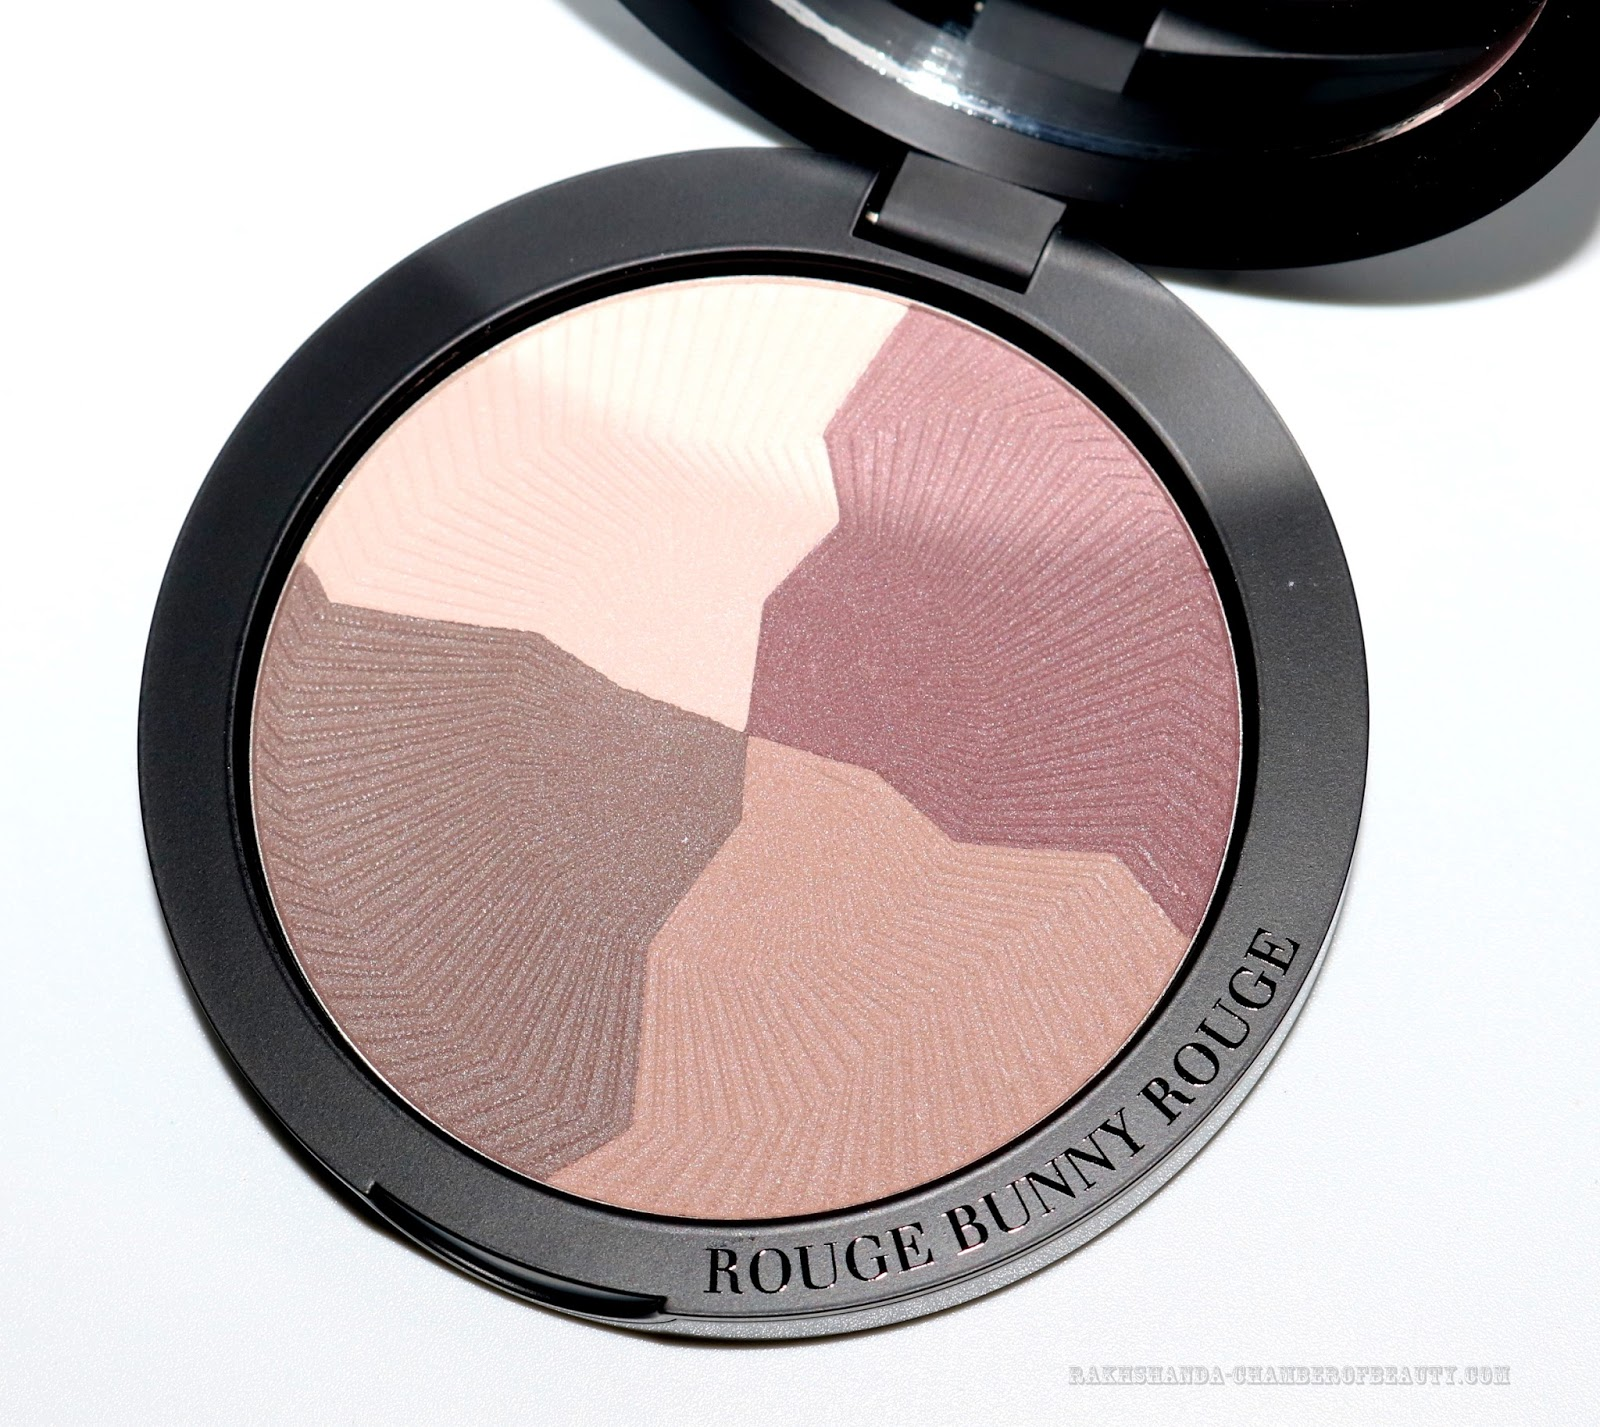 rakhshanda-chamberofbeauty.com/Rouge Bunny Rouge Eye Shadow Palette Raw Garden in Caliche Review and Swatches